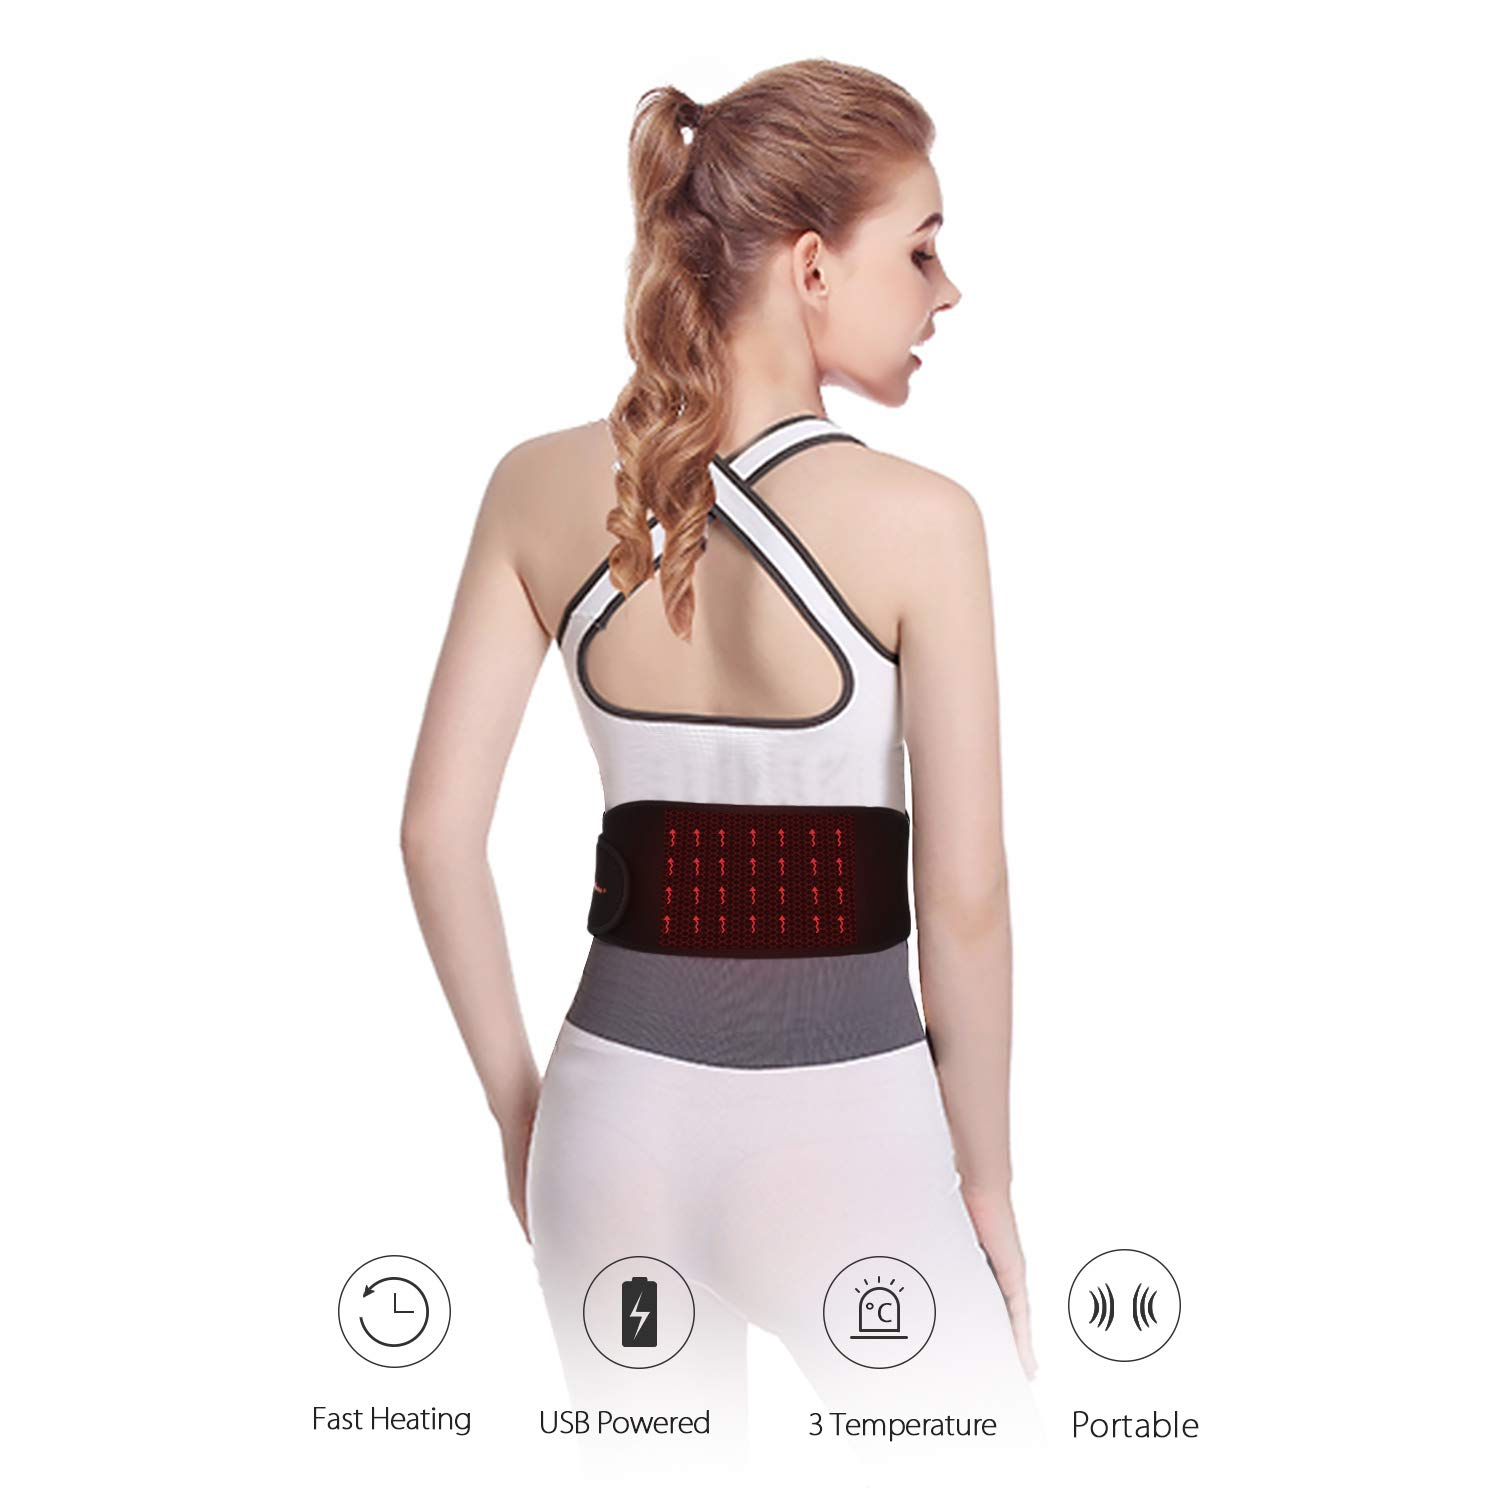 USB Powered Far Infrared Portable Waist Electric Heating Pad Belt W/Graphene Fast Heating Film, 3 Temperature Settings, Perfect for The Back Abdominal Stomach Cramps Arthritic Pain Relief